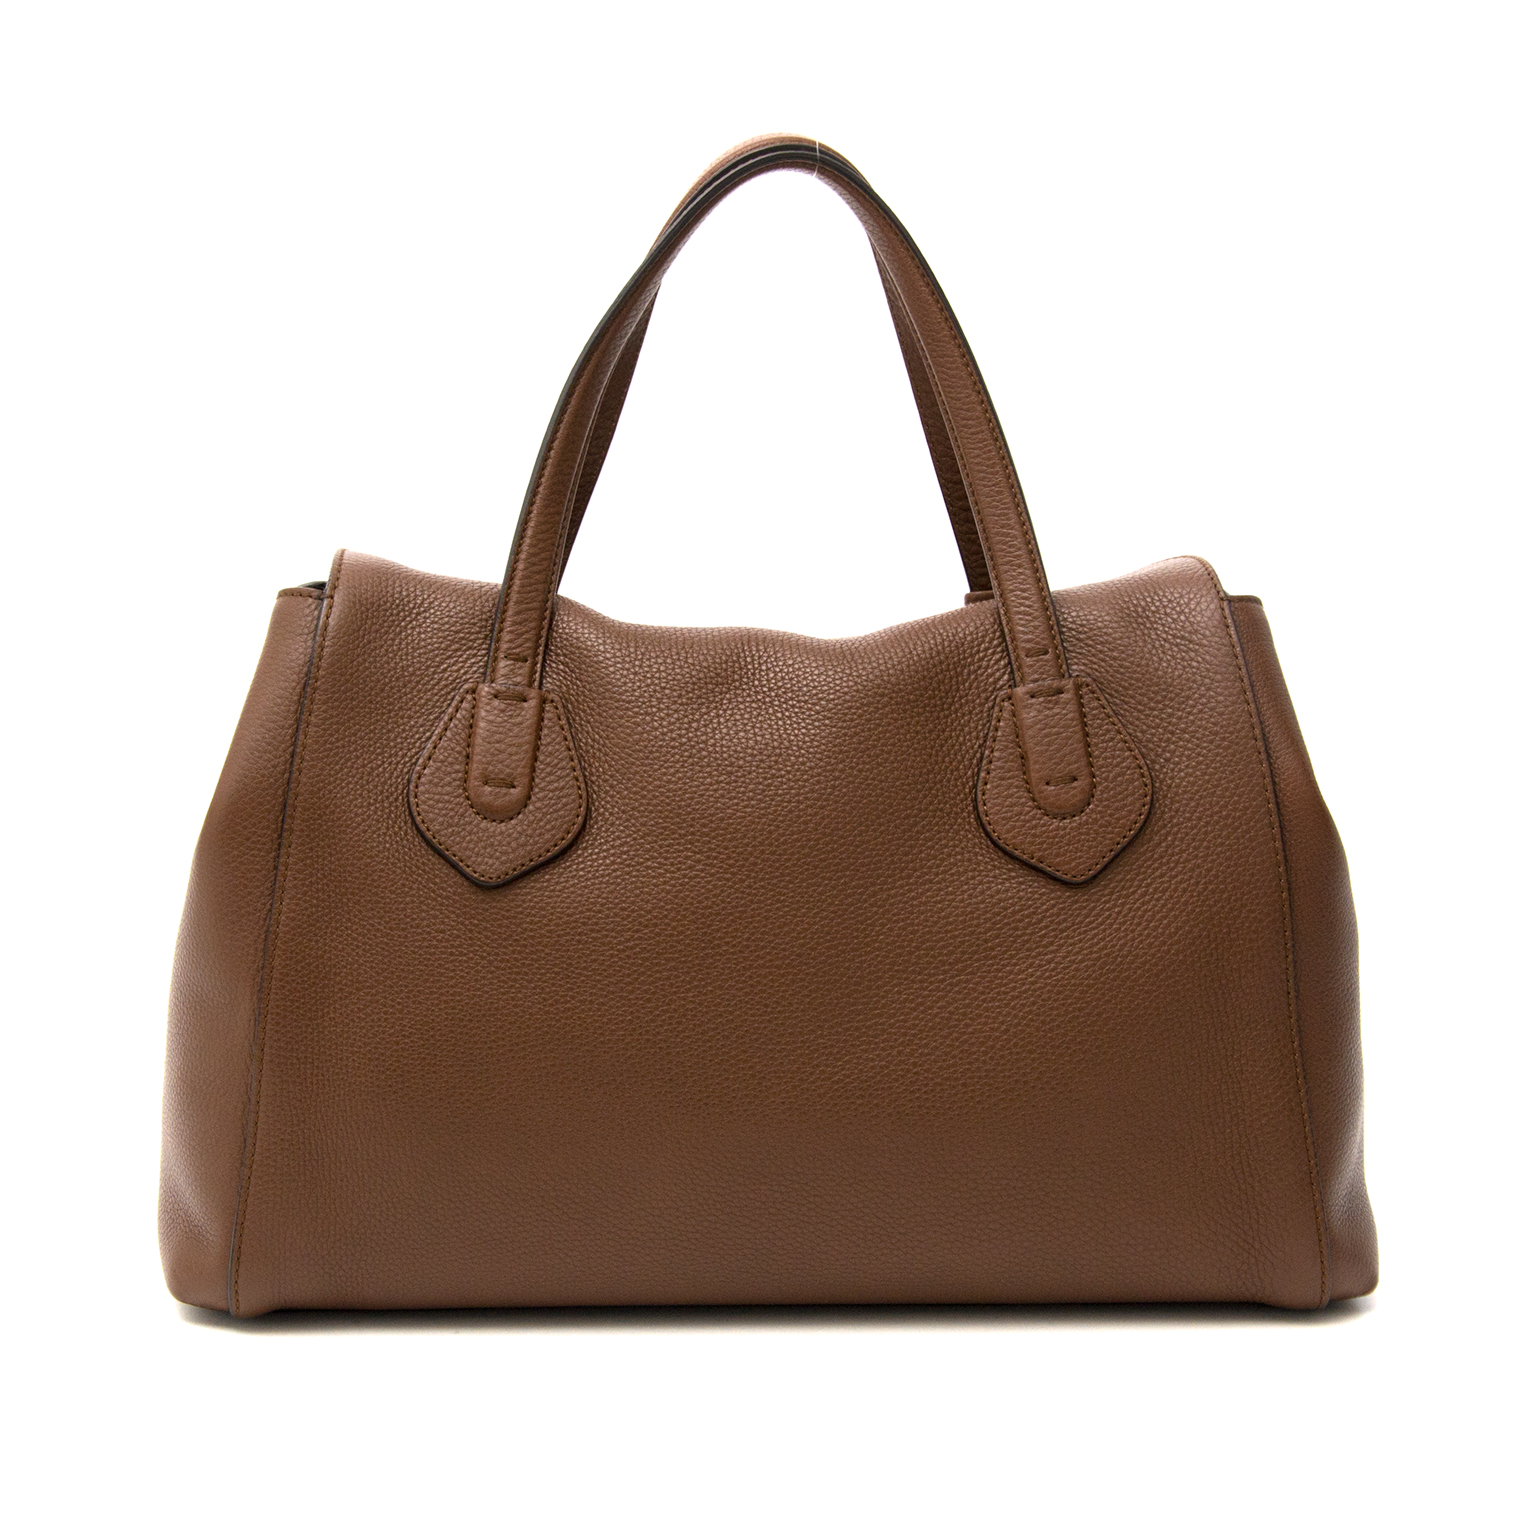 Authentic Gucci Brown Lady Tassel  Bag for sale online